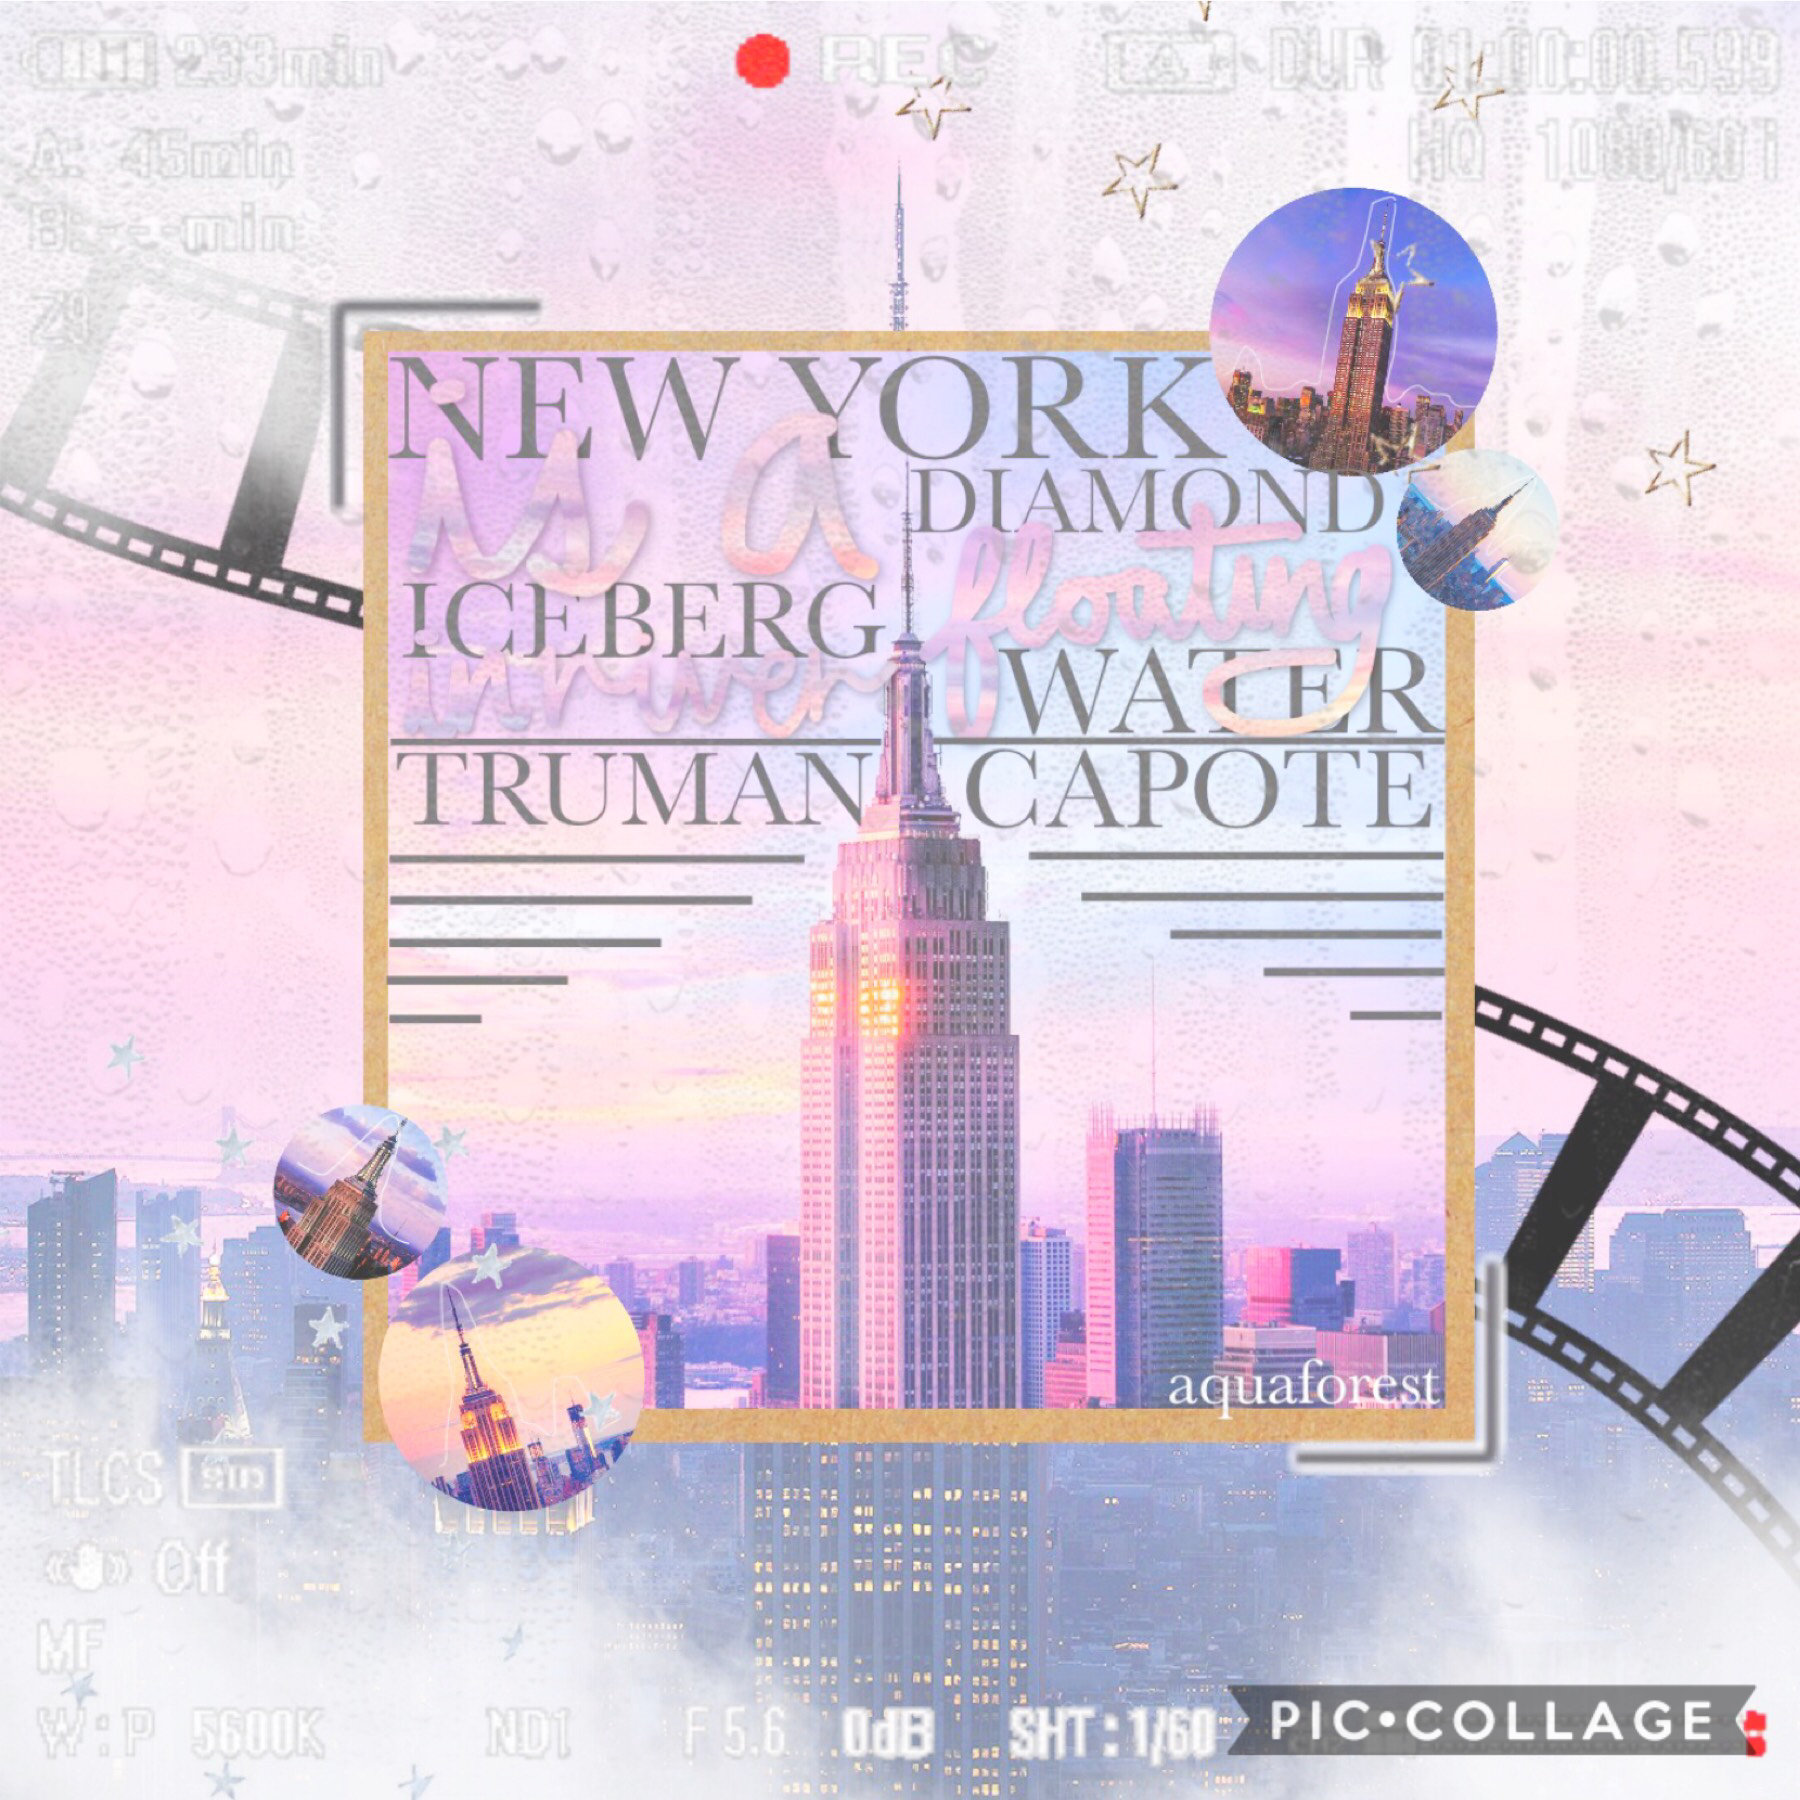 TAP WHEW I HAVENT BEEN ON DIS ACC IN A LOOONG TIME this is my entry for -lau's games! Theme:nyc